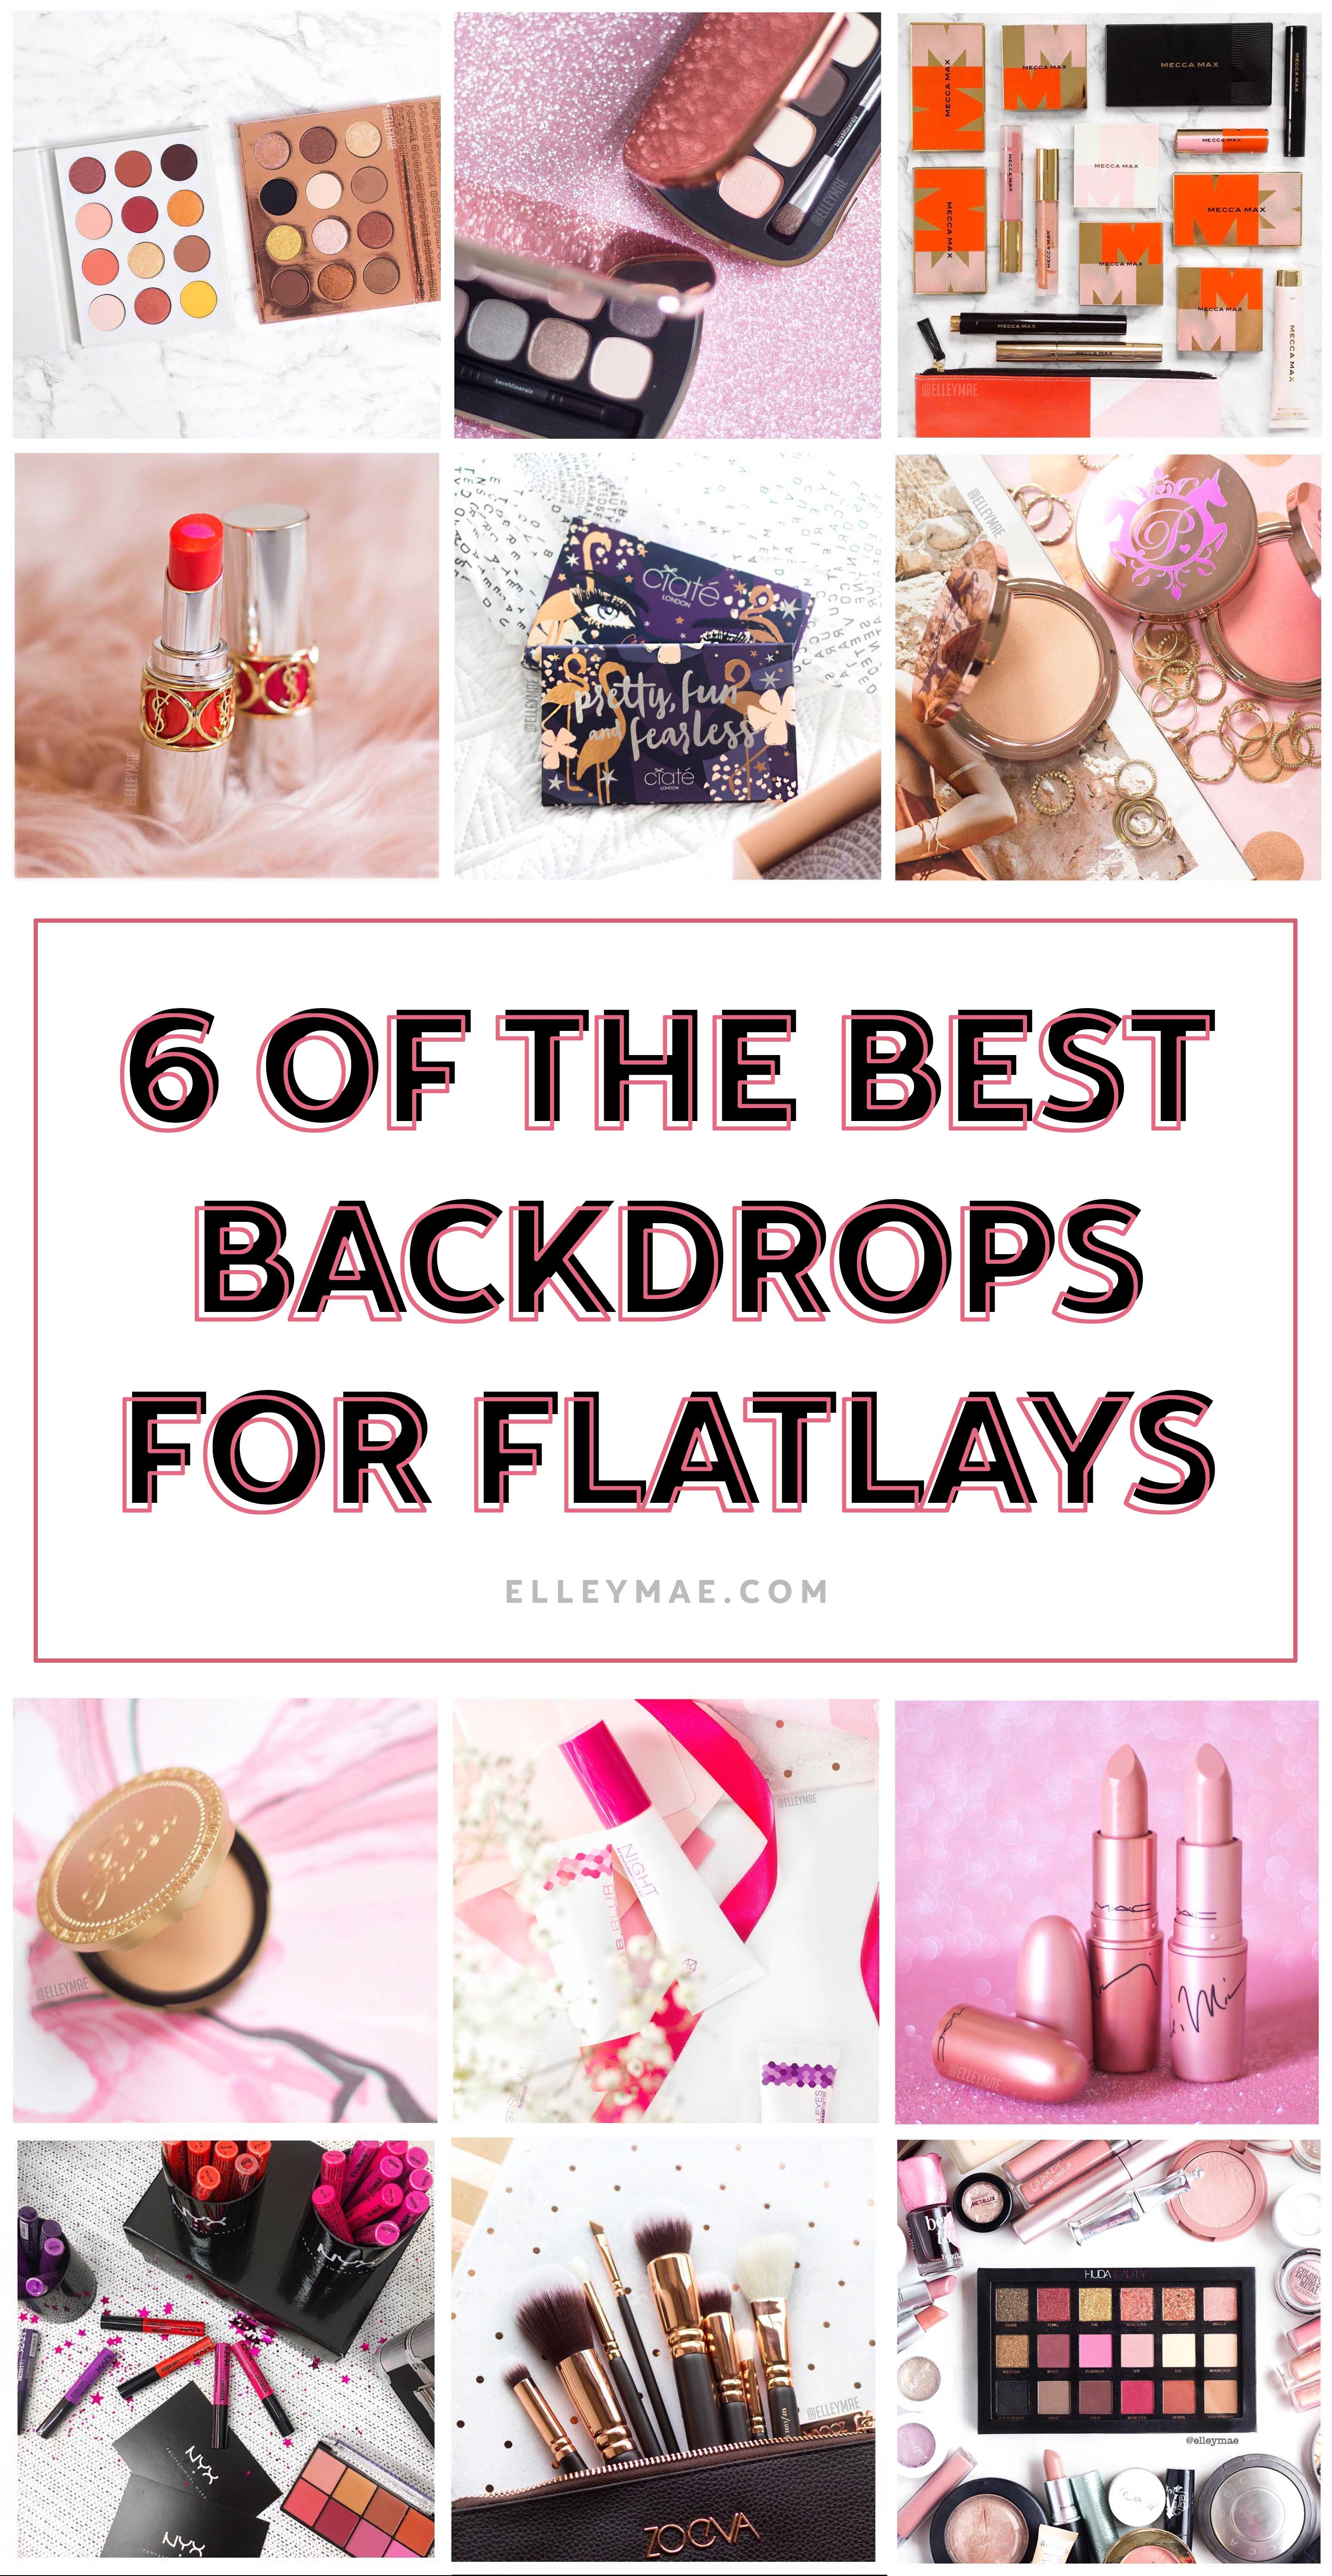 A List of The Best Backdrops for Flatlays | Grow your blog with professional photography for both products & portraits - Learn how to gain loyal readers with gorgeous photographs using these 6 photo backdrops | Learn more at ElleyMae.com | Blog - Grow Your Blog - Photography Tips - Blog Tips for Beginners - Photography Tips for Beginners | Learn More At ElleyMae.com